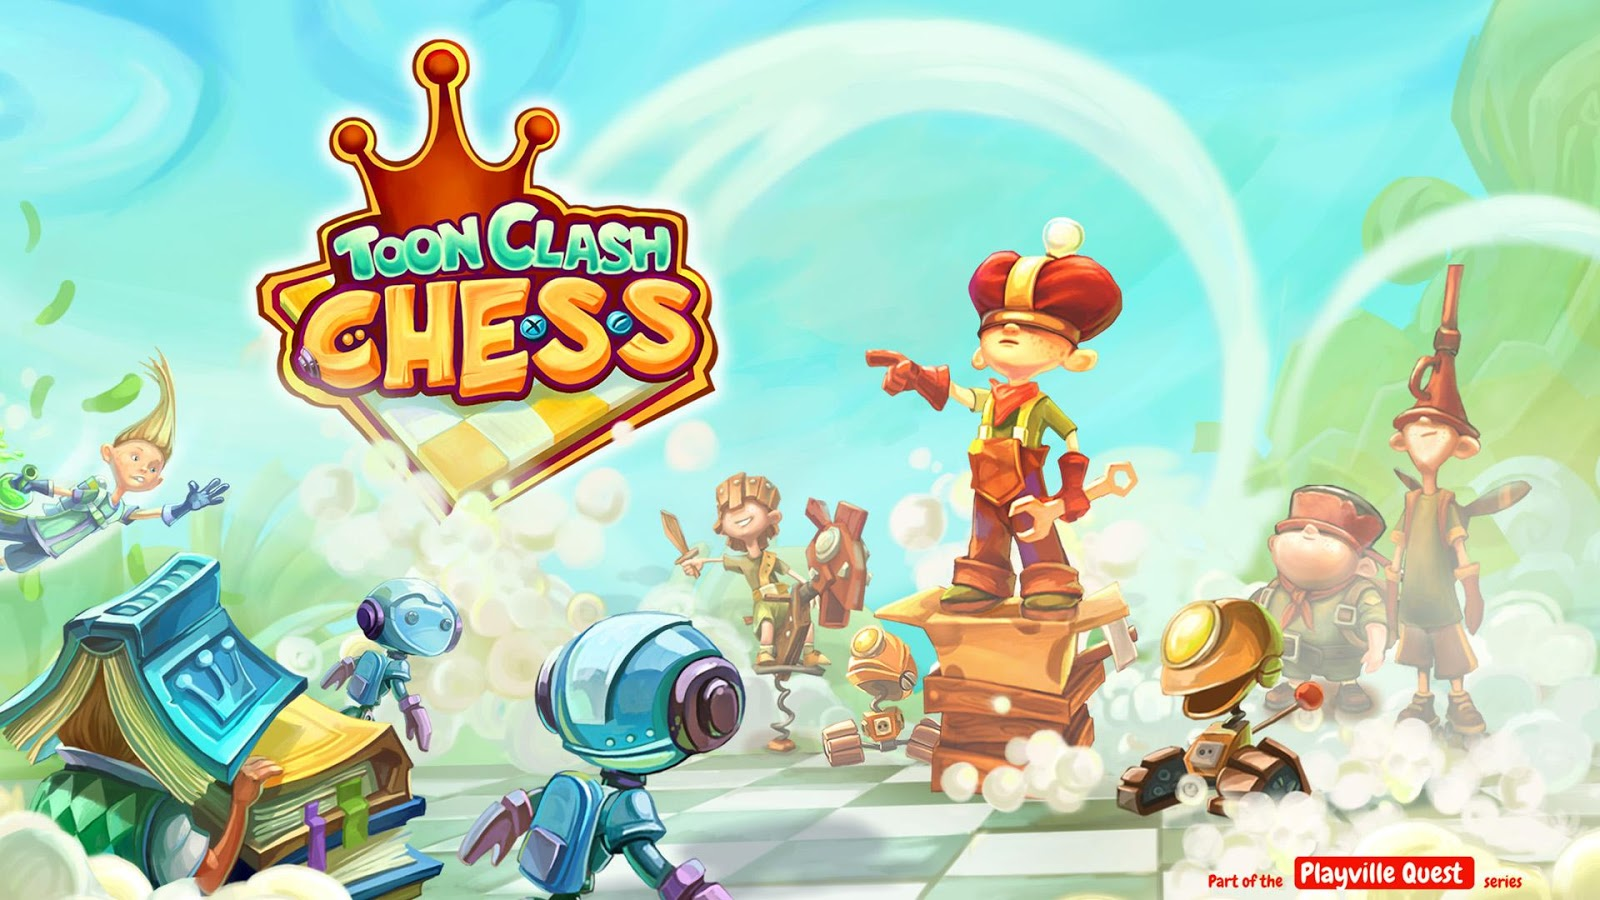 Тoon Clash Chess Screenshot 0